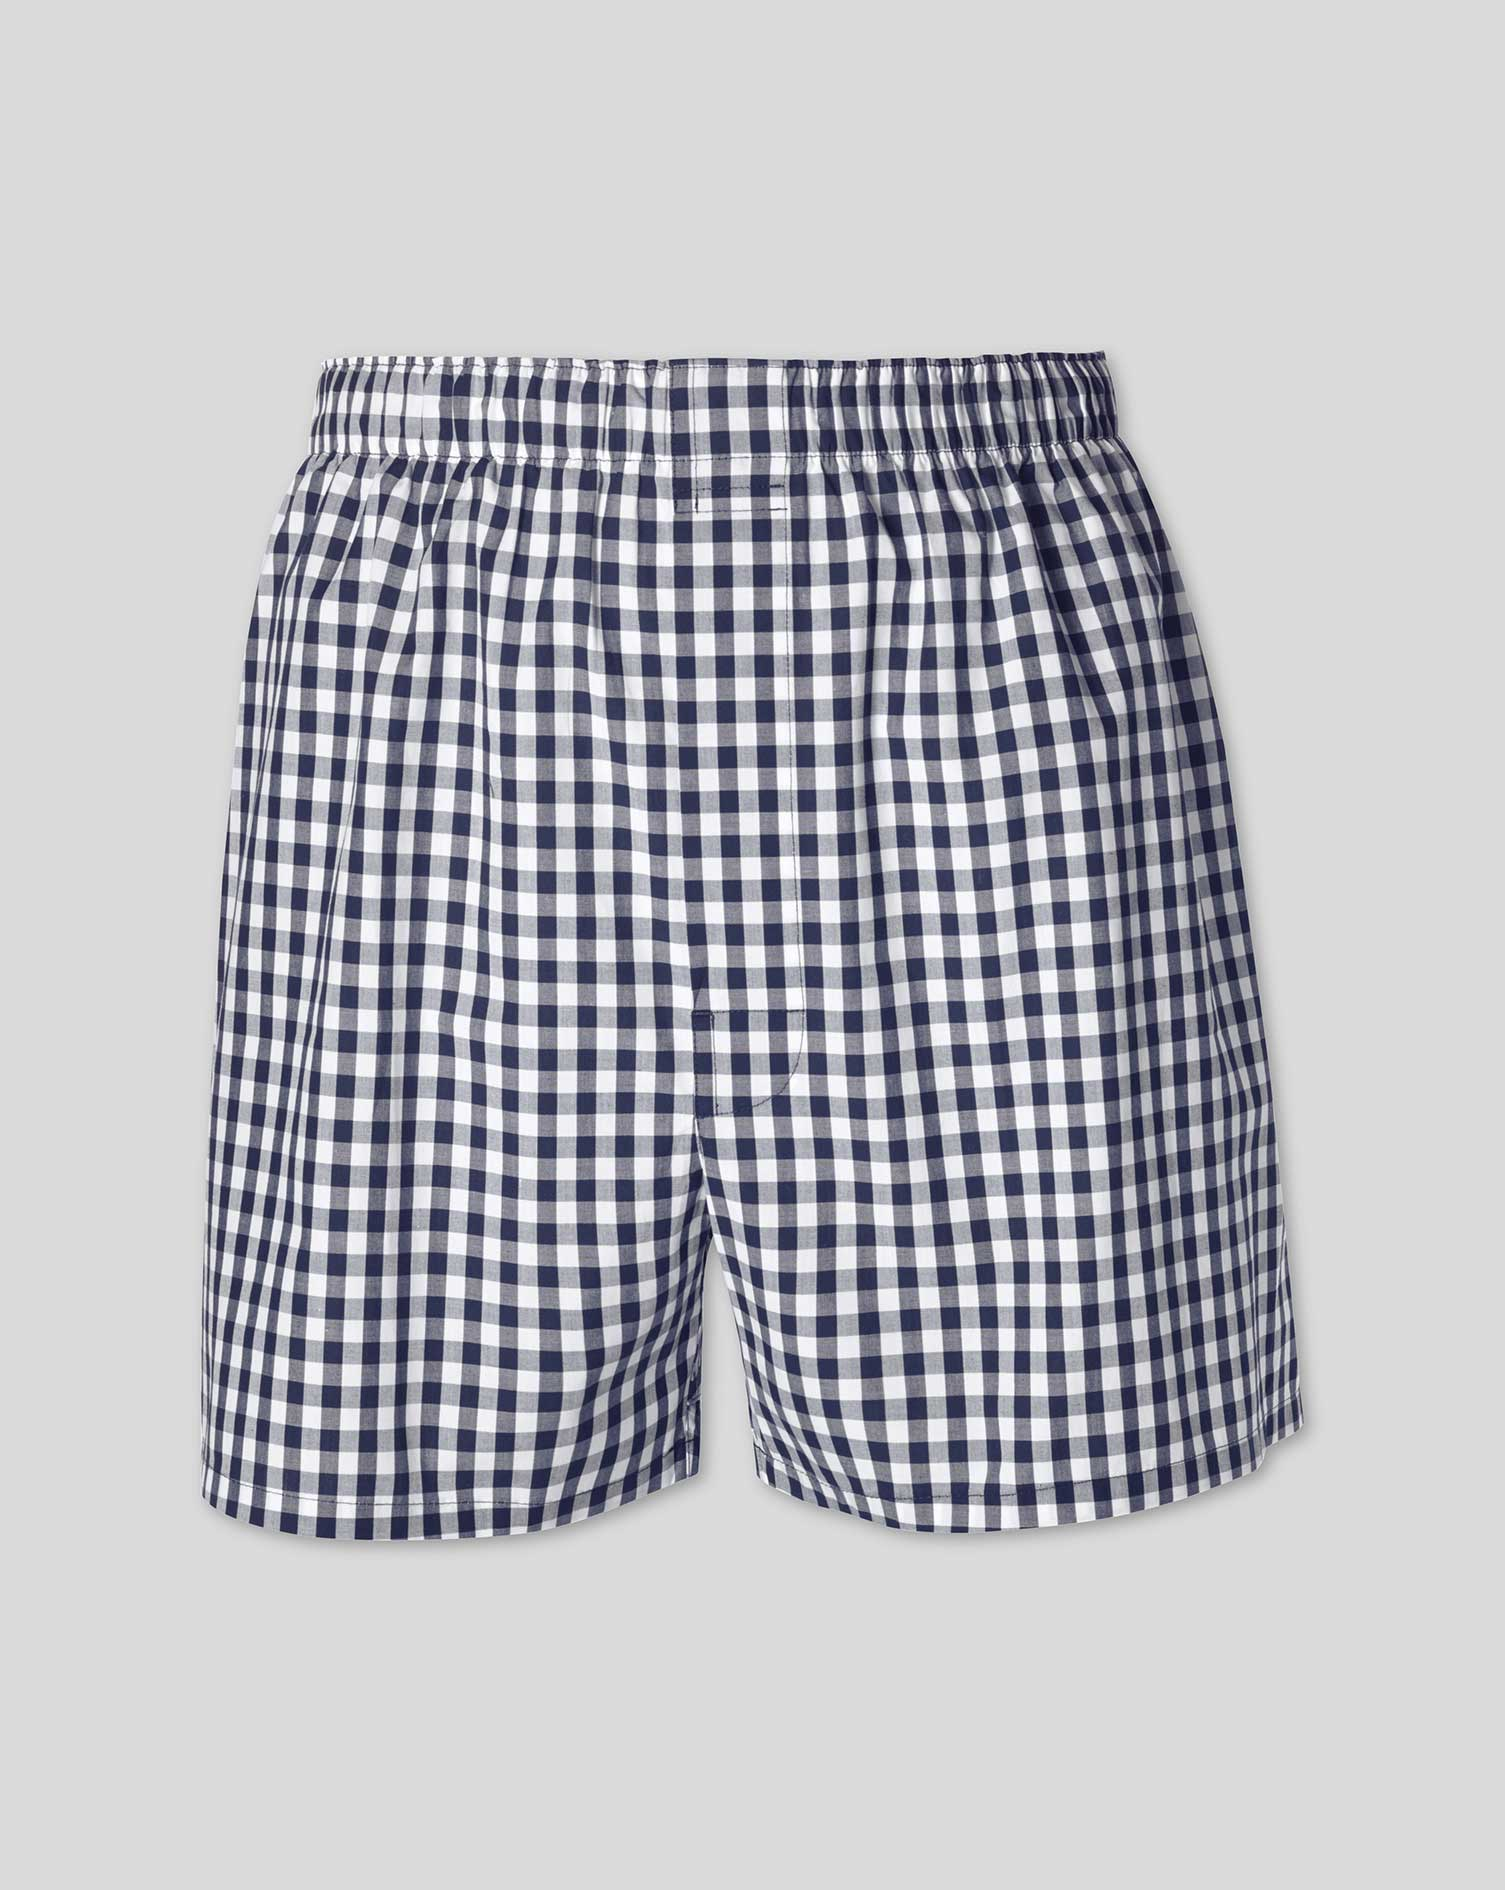 Navy Gingham Woven Boxers Size Large by Charles Tyrwhitt